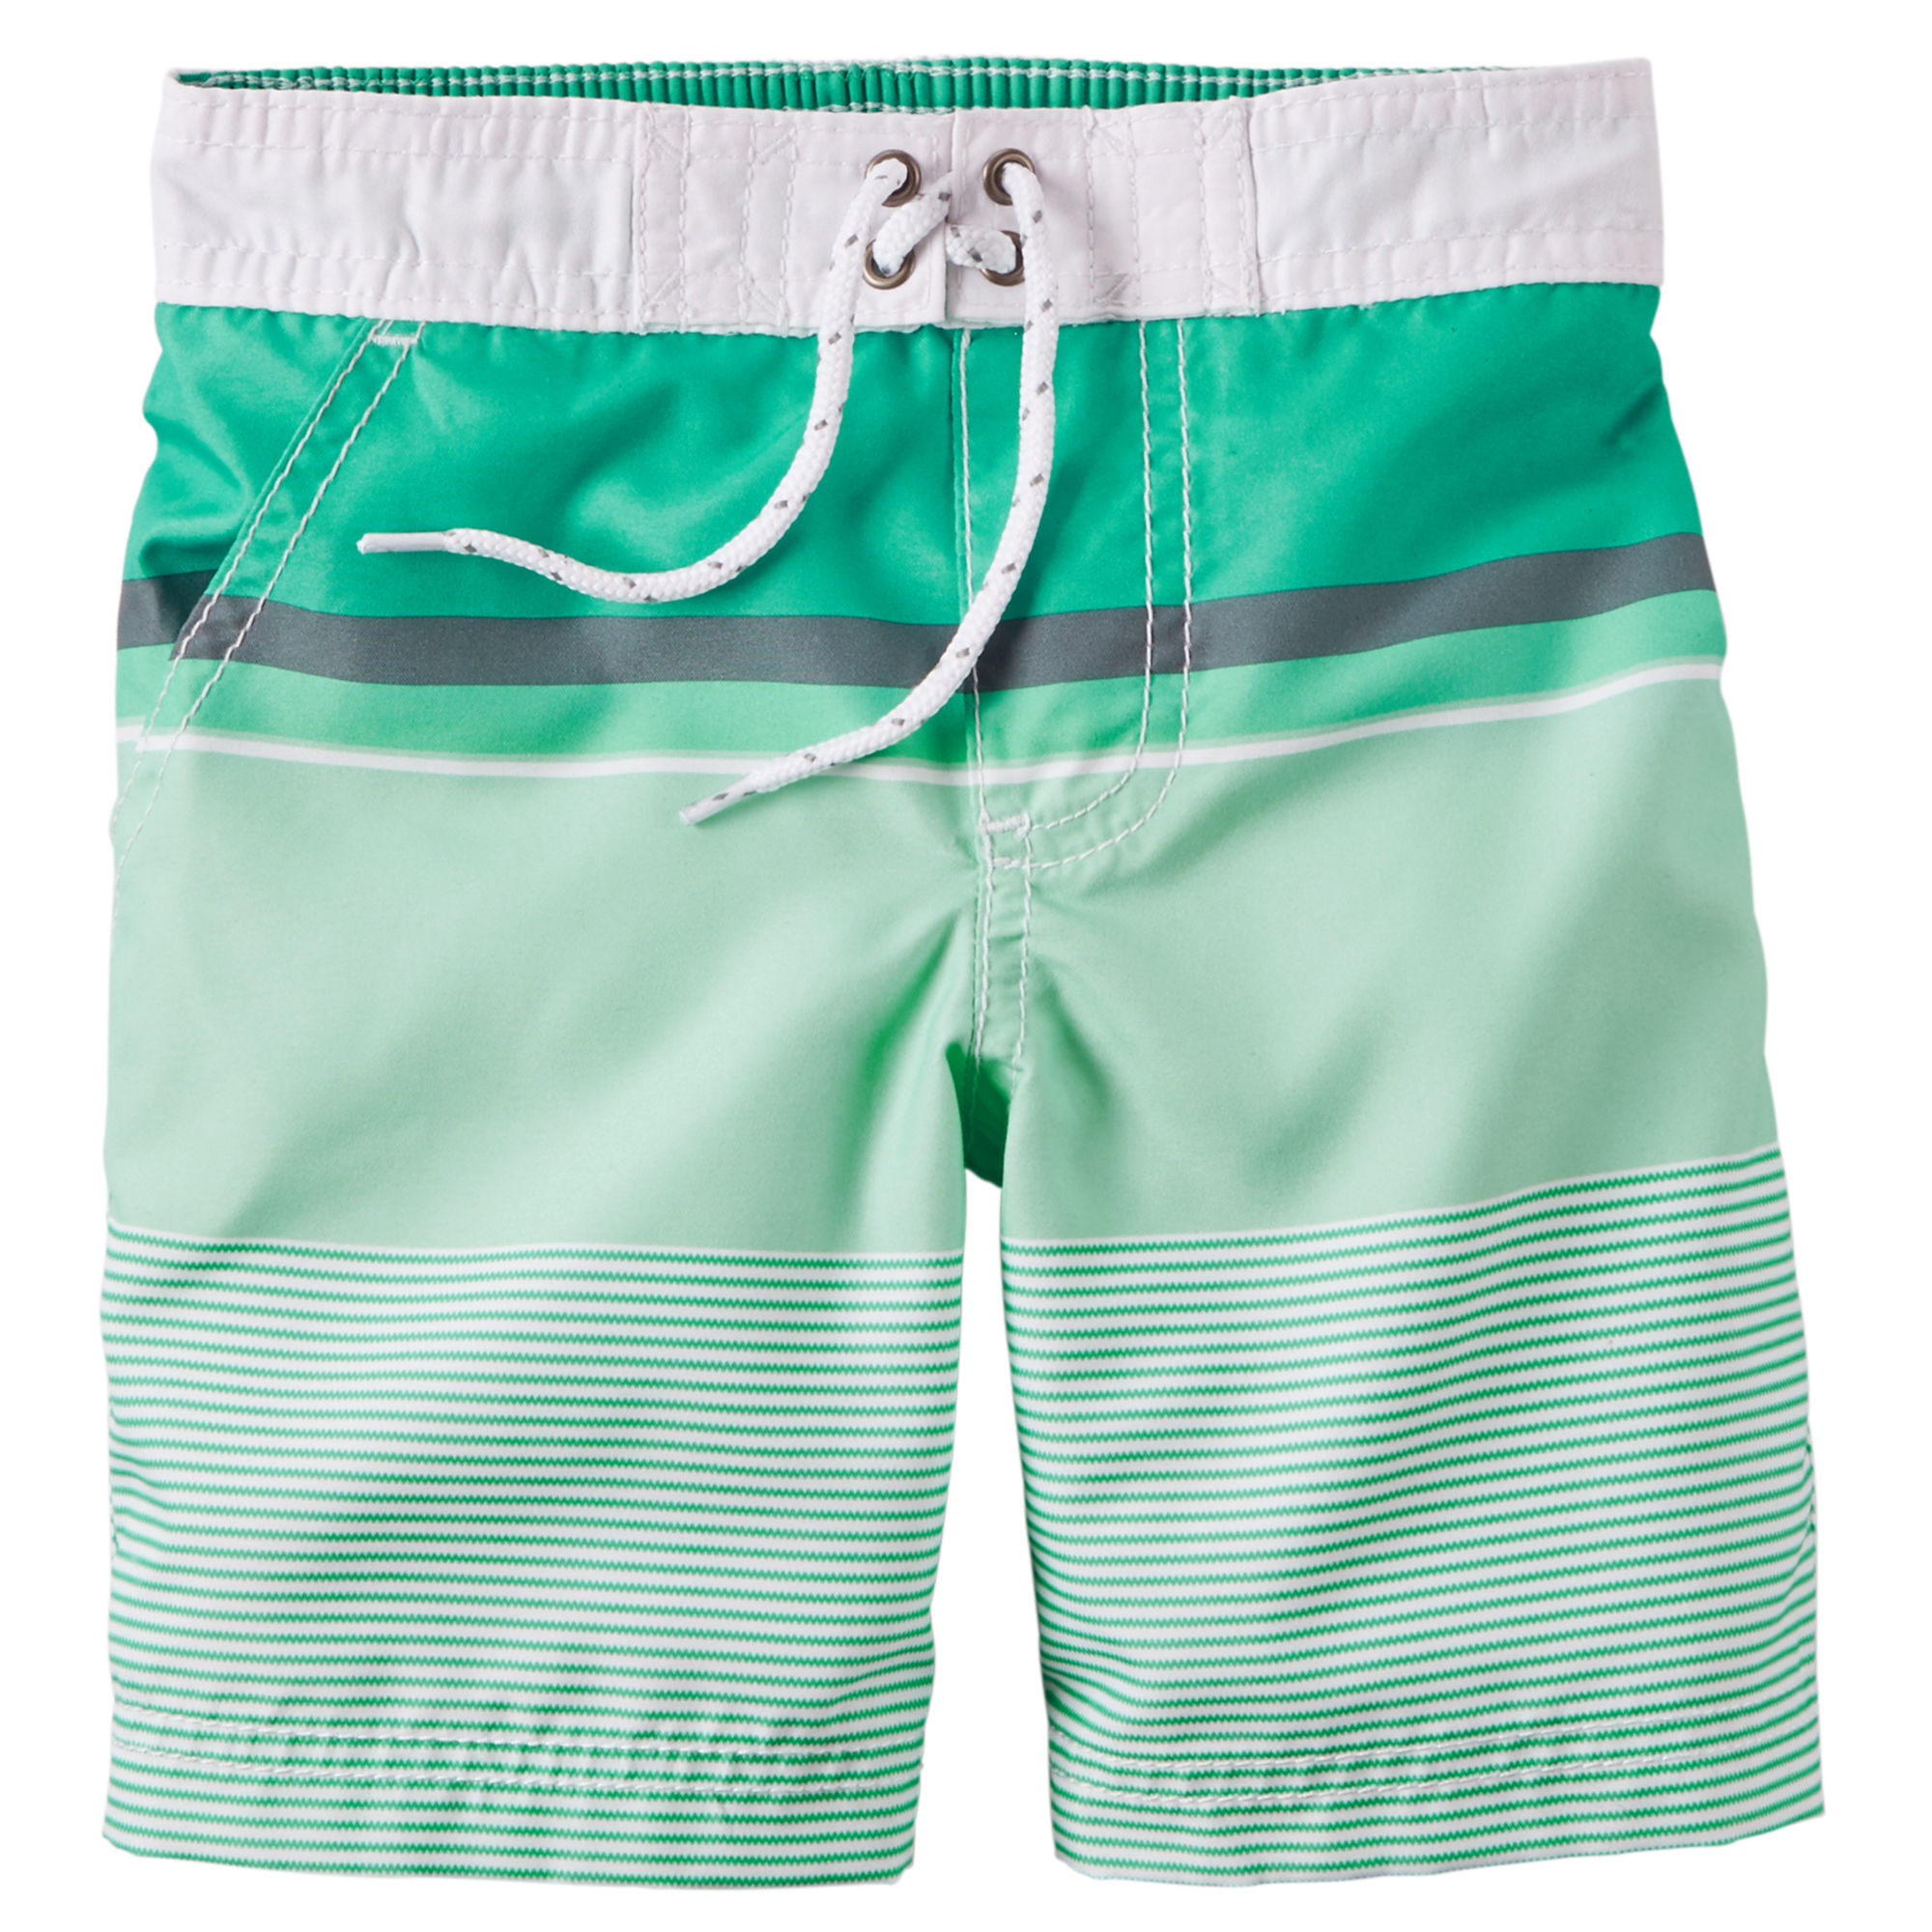 44b2fcbf73 Carter's Striped Swim Trunks; Carter's Striped Swim Trunks ...